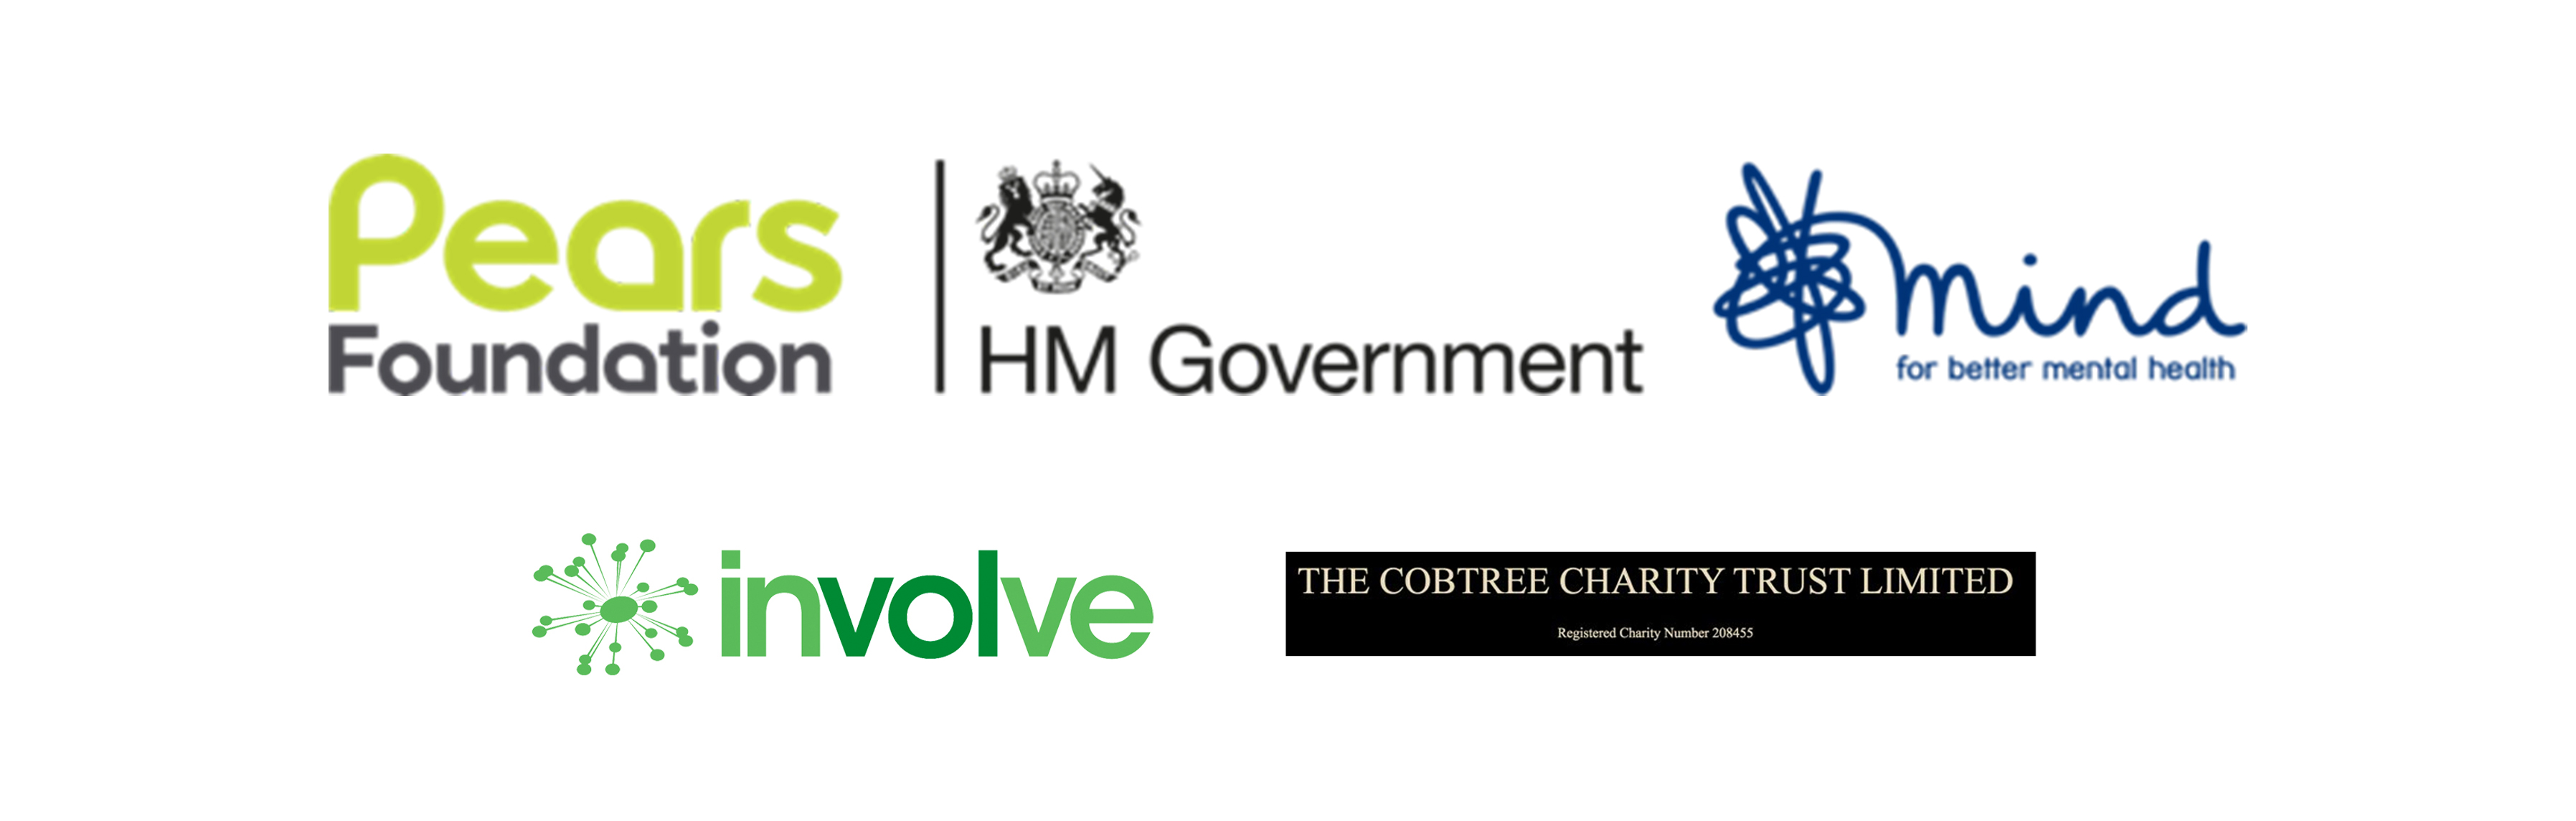 Pears Foundation, HM Government, Mind, Involve, Cobtree Charity Trust